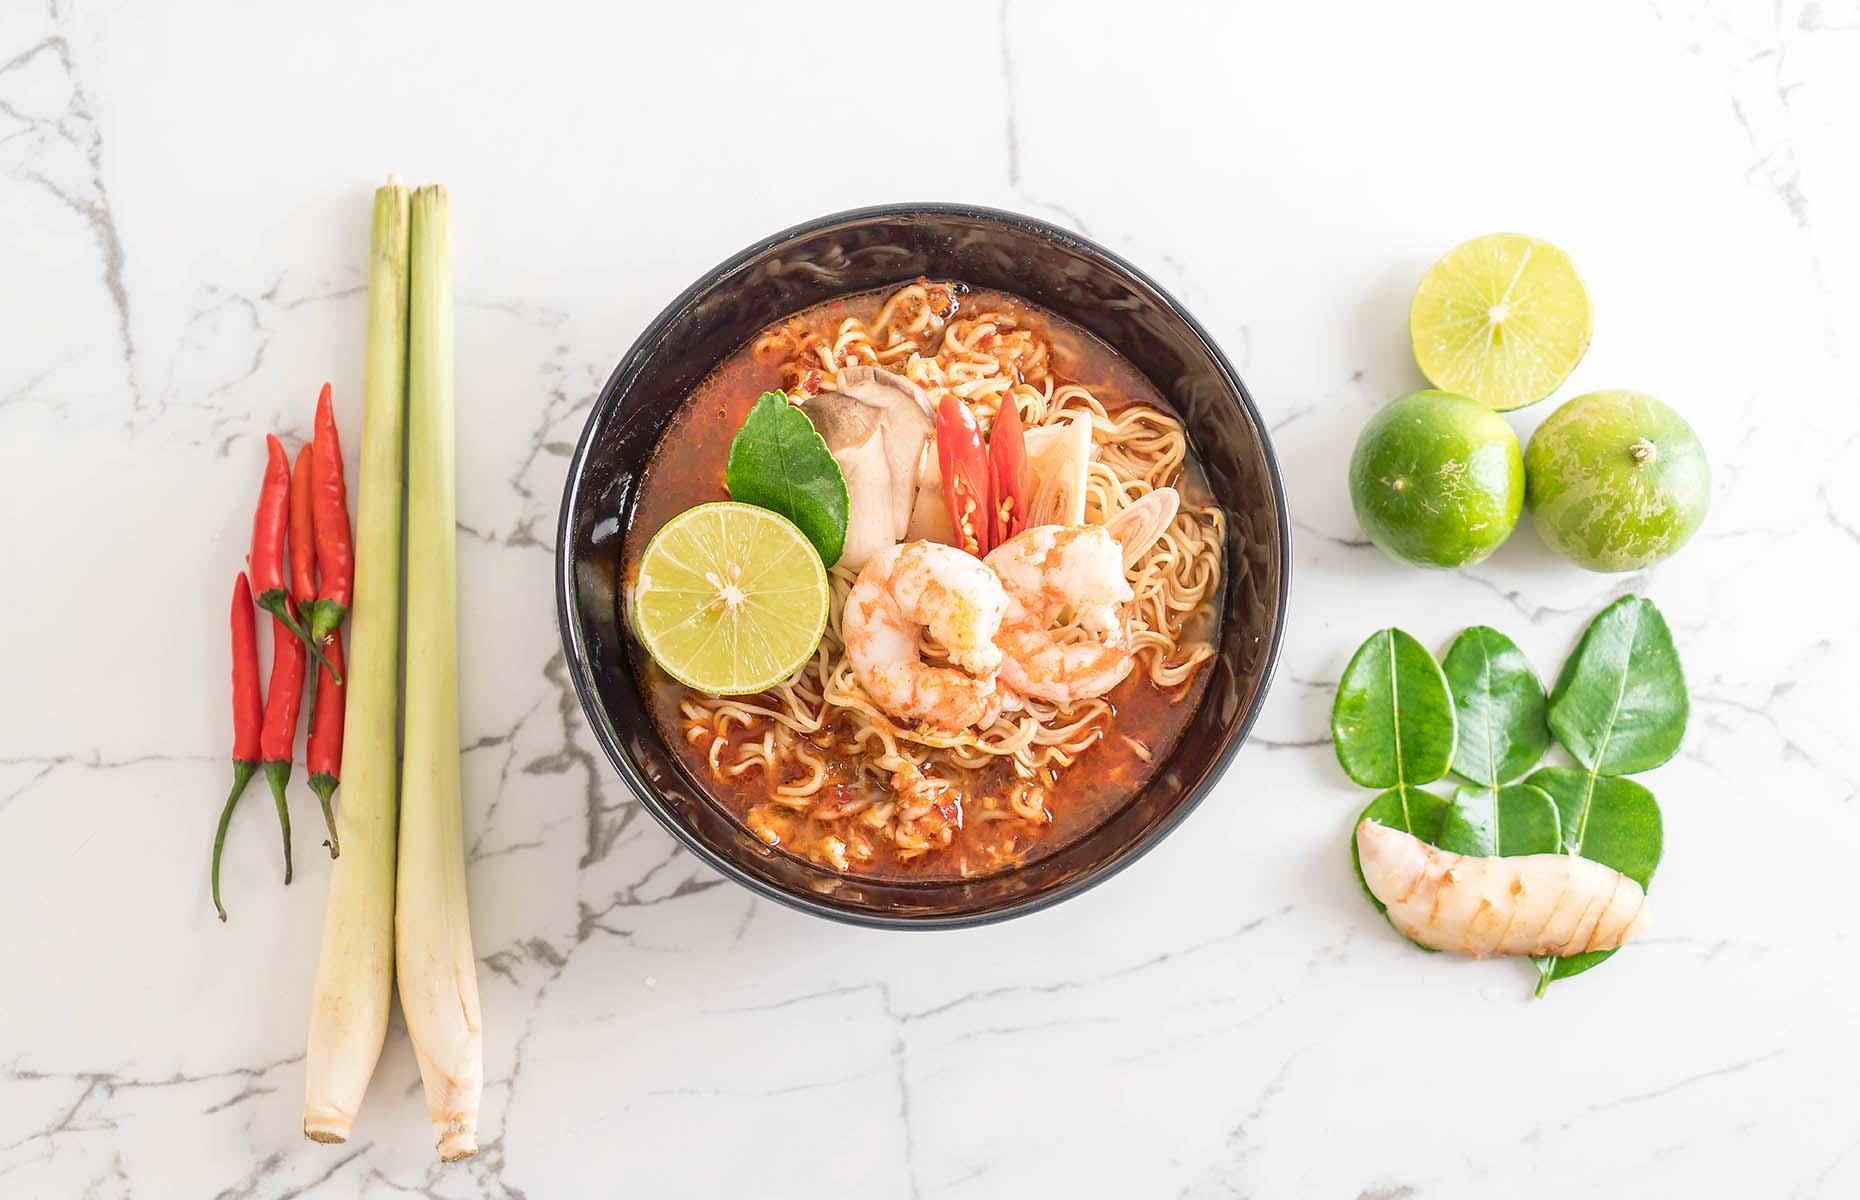 Lemongrass Thai soup recipe (Image: gowithstock/Shutterstock)